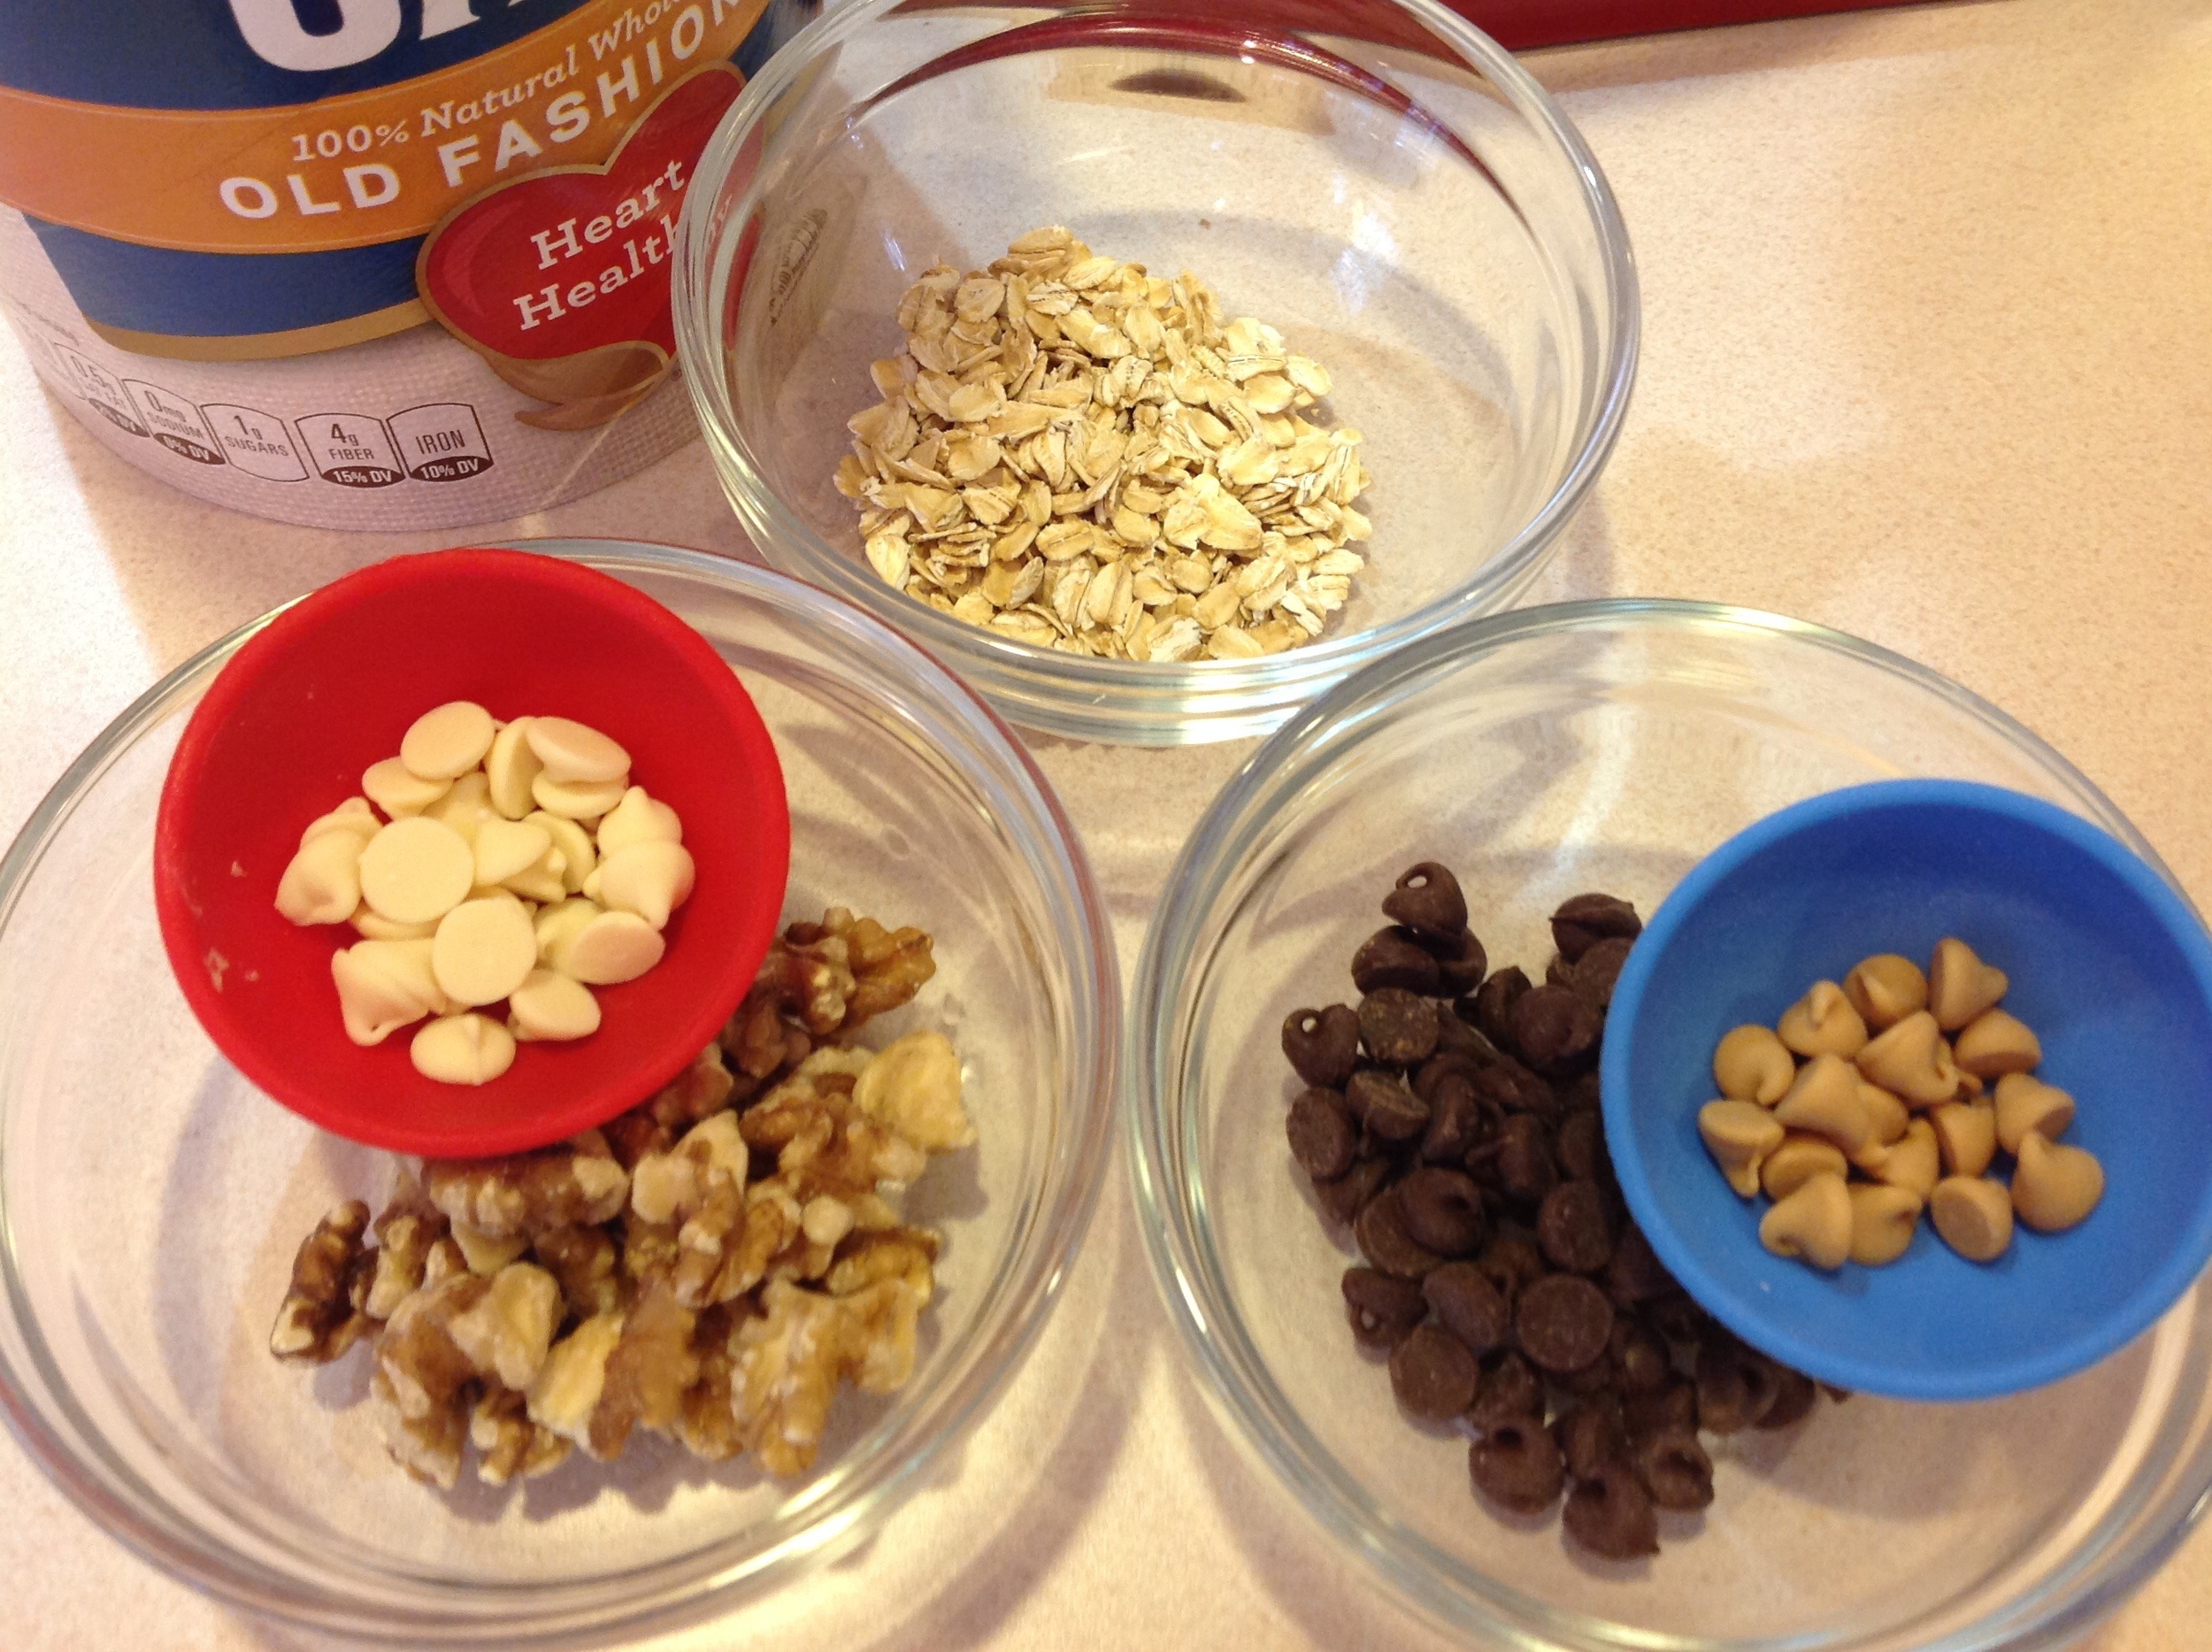 Oats, walnuts and three different kinds of chips ... oh my!